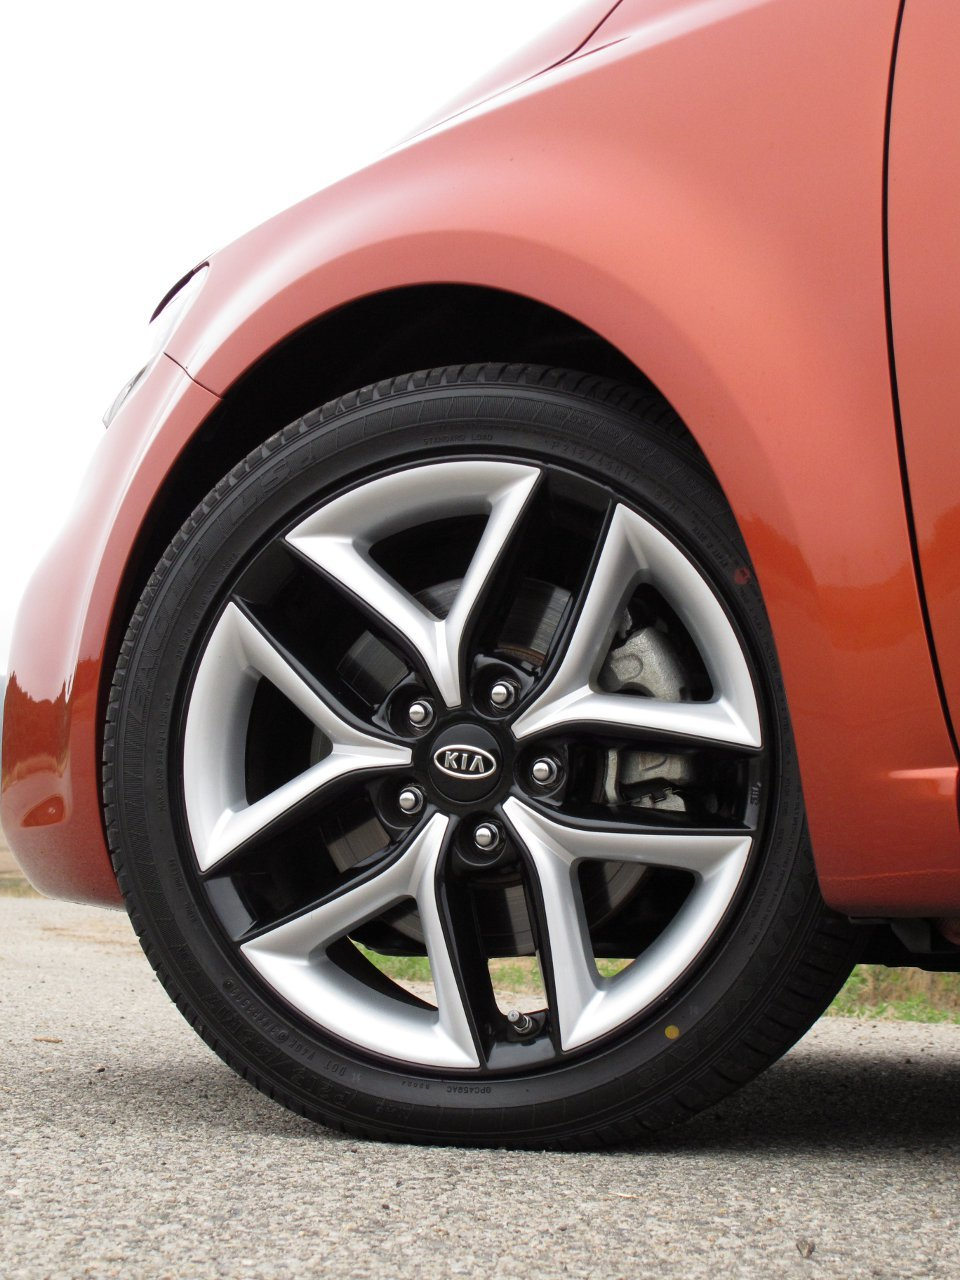 Kia Forte wheels #4